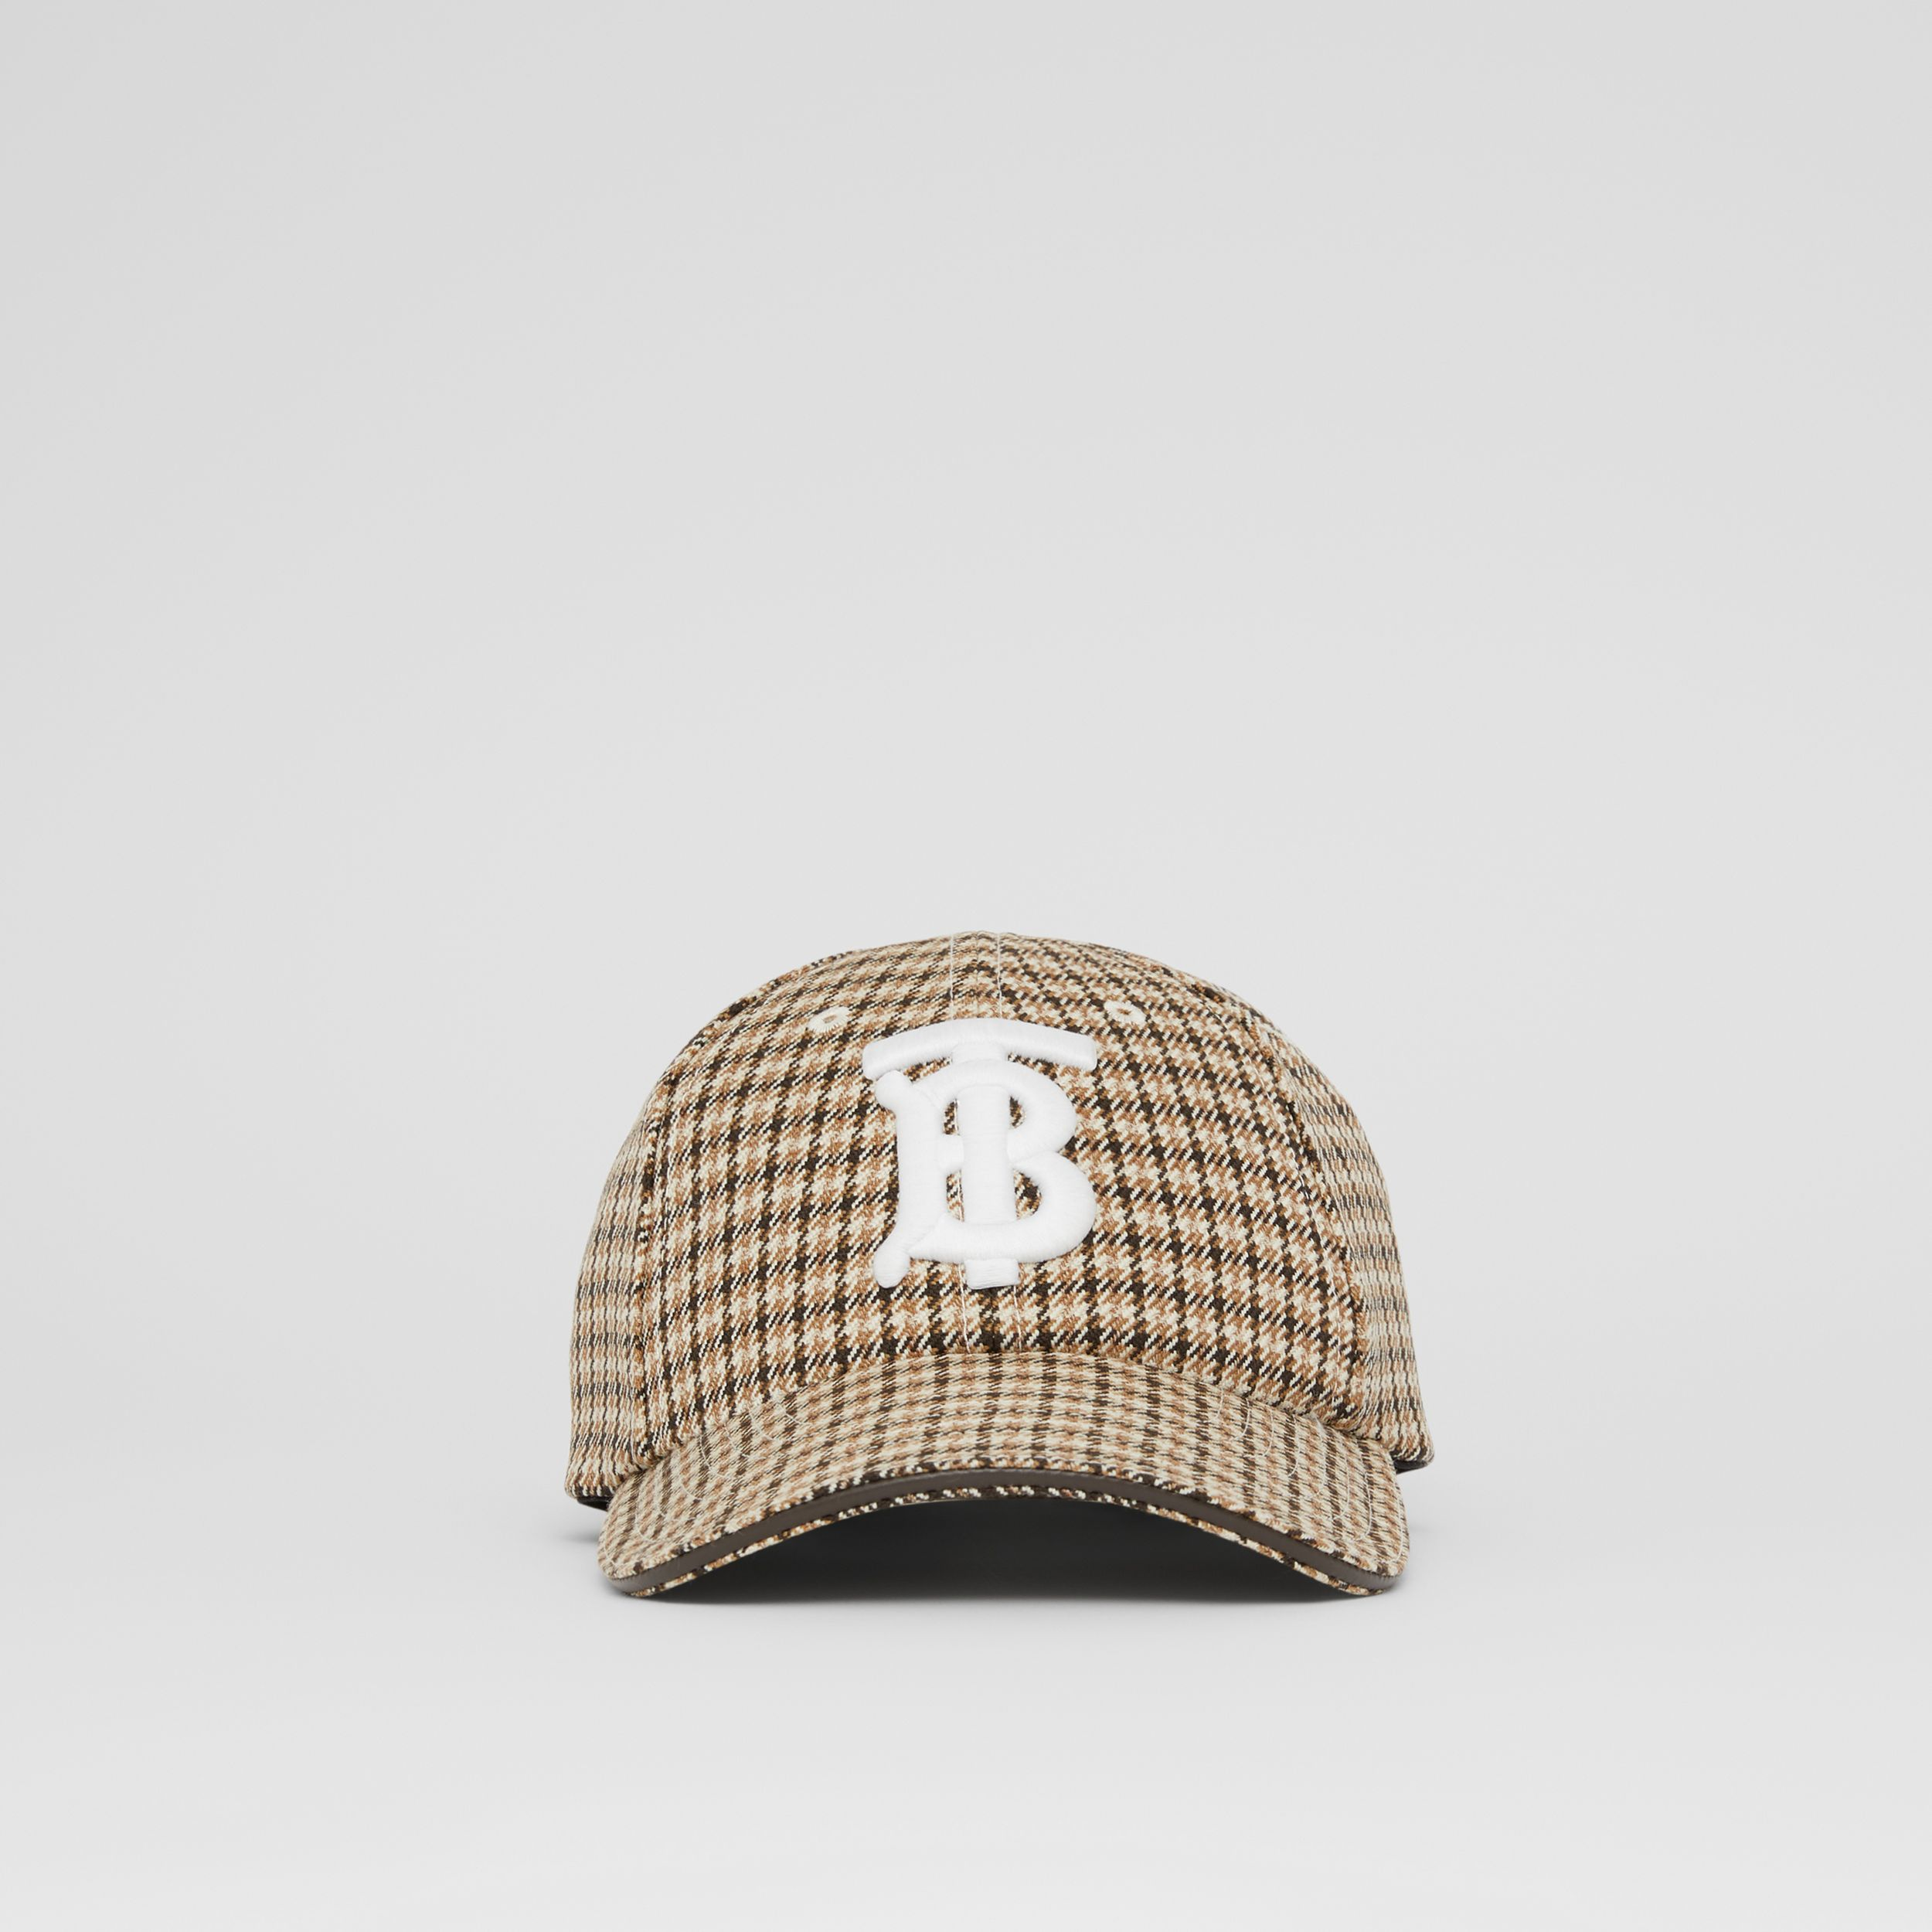 Monogram Motif Houndstooth Check Baseball Cap in Fawn | Burberry - 1